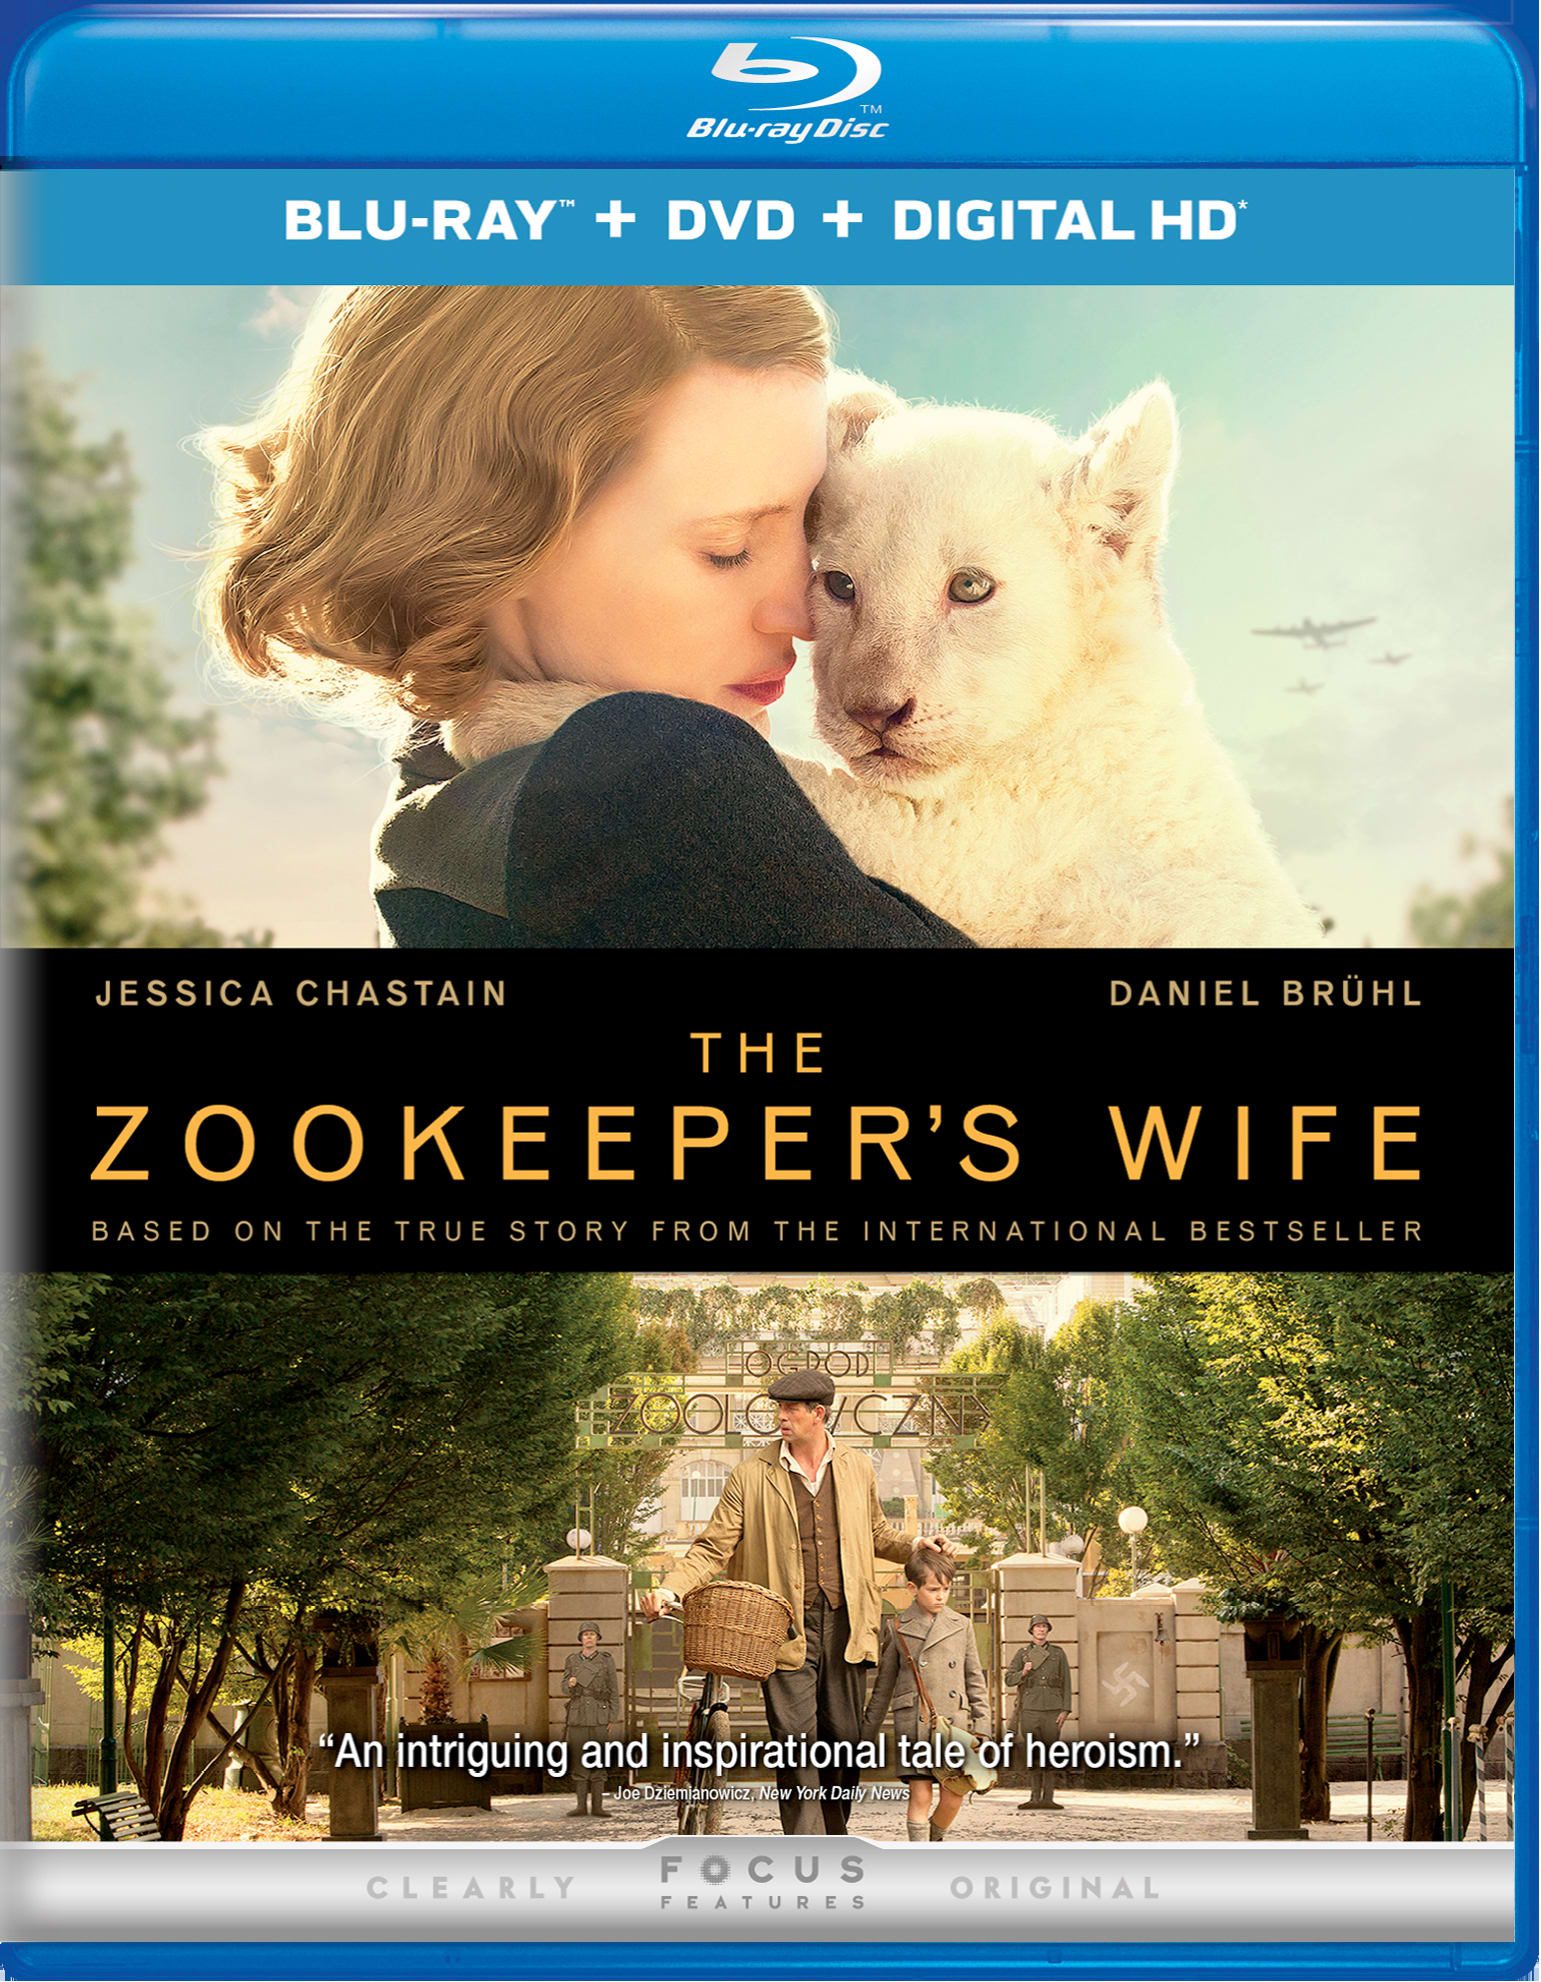 The Zookeeper's Wife (DVD + Digital) [Blu-ray]